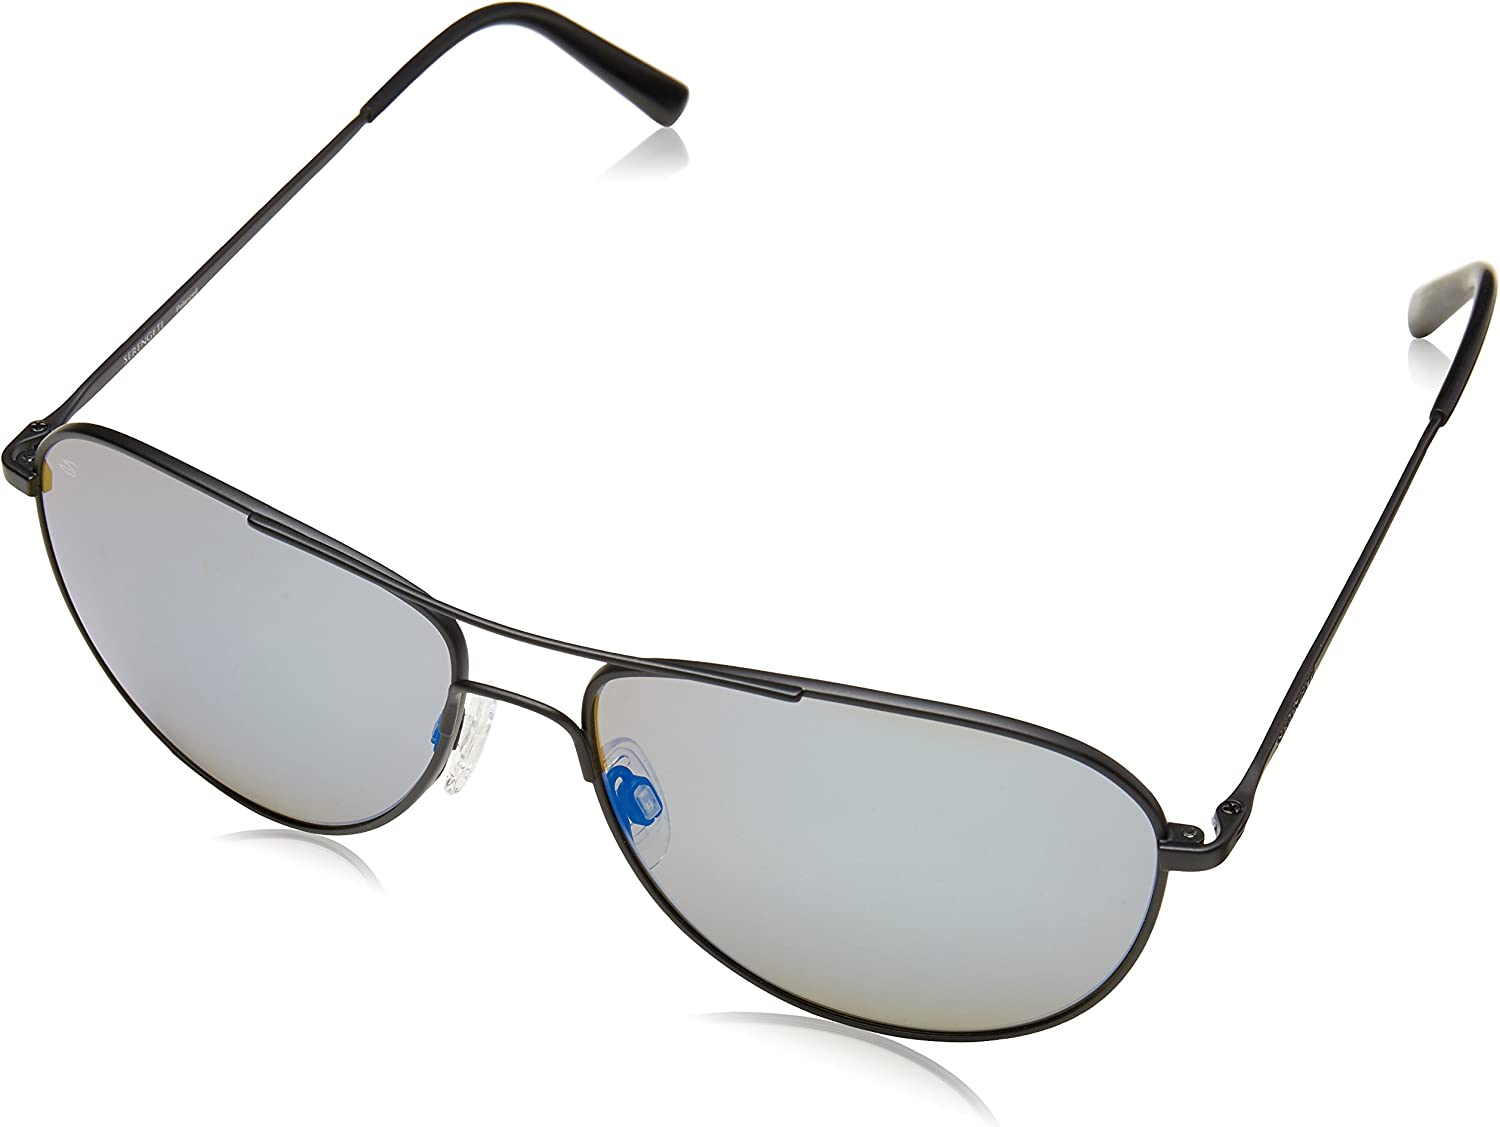 SERENGETI ALGHERO SUNGLASSES (SATIN BLACK FRAME POLARIZED 555NM blueeE LENS)